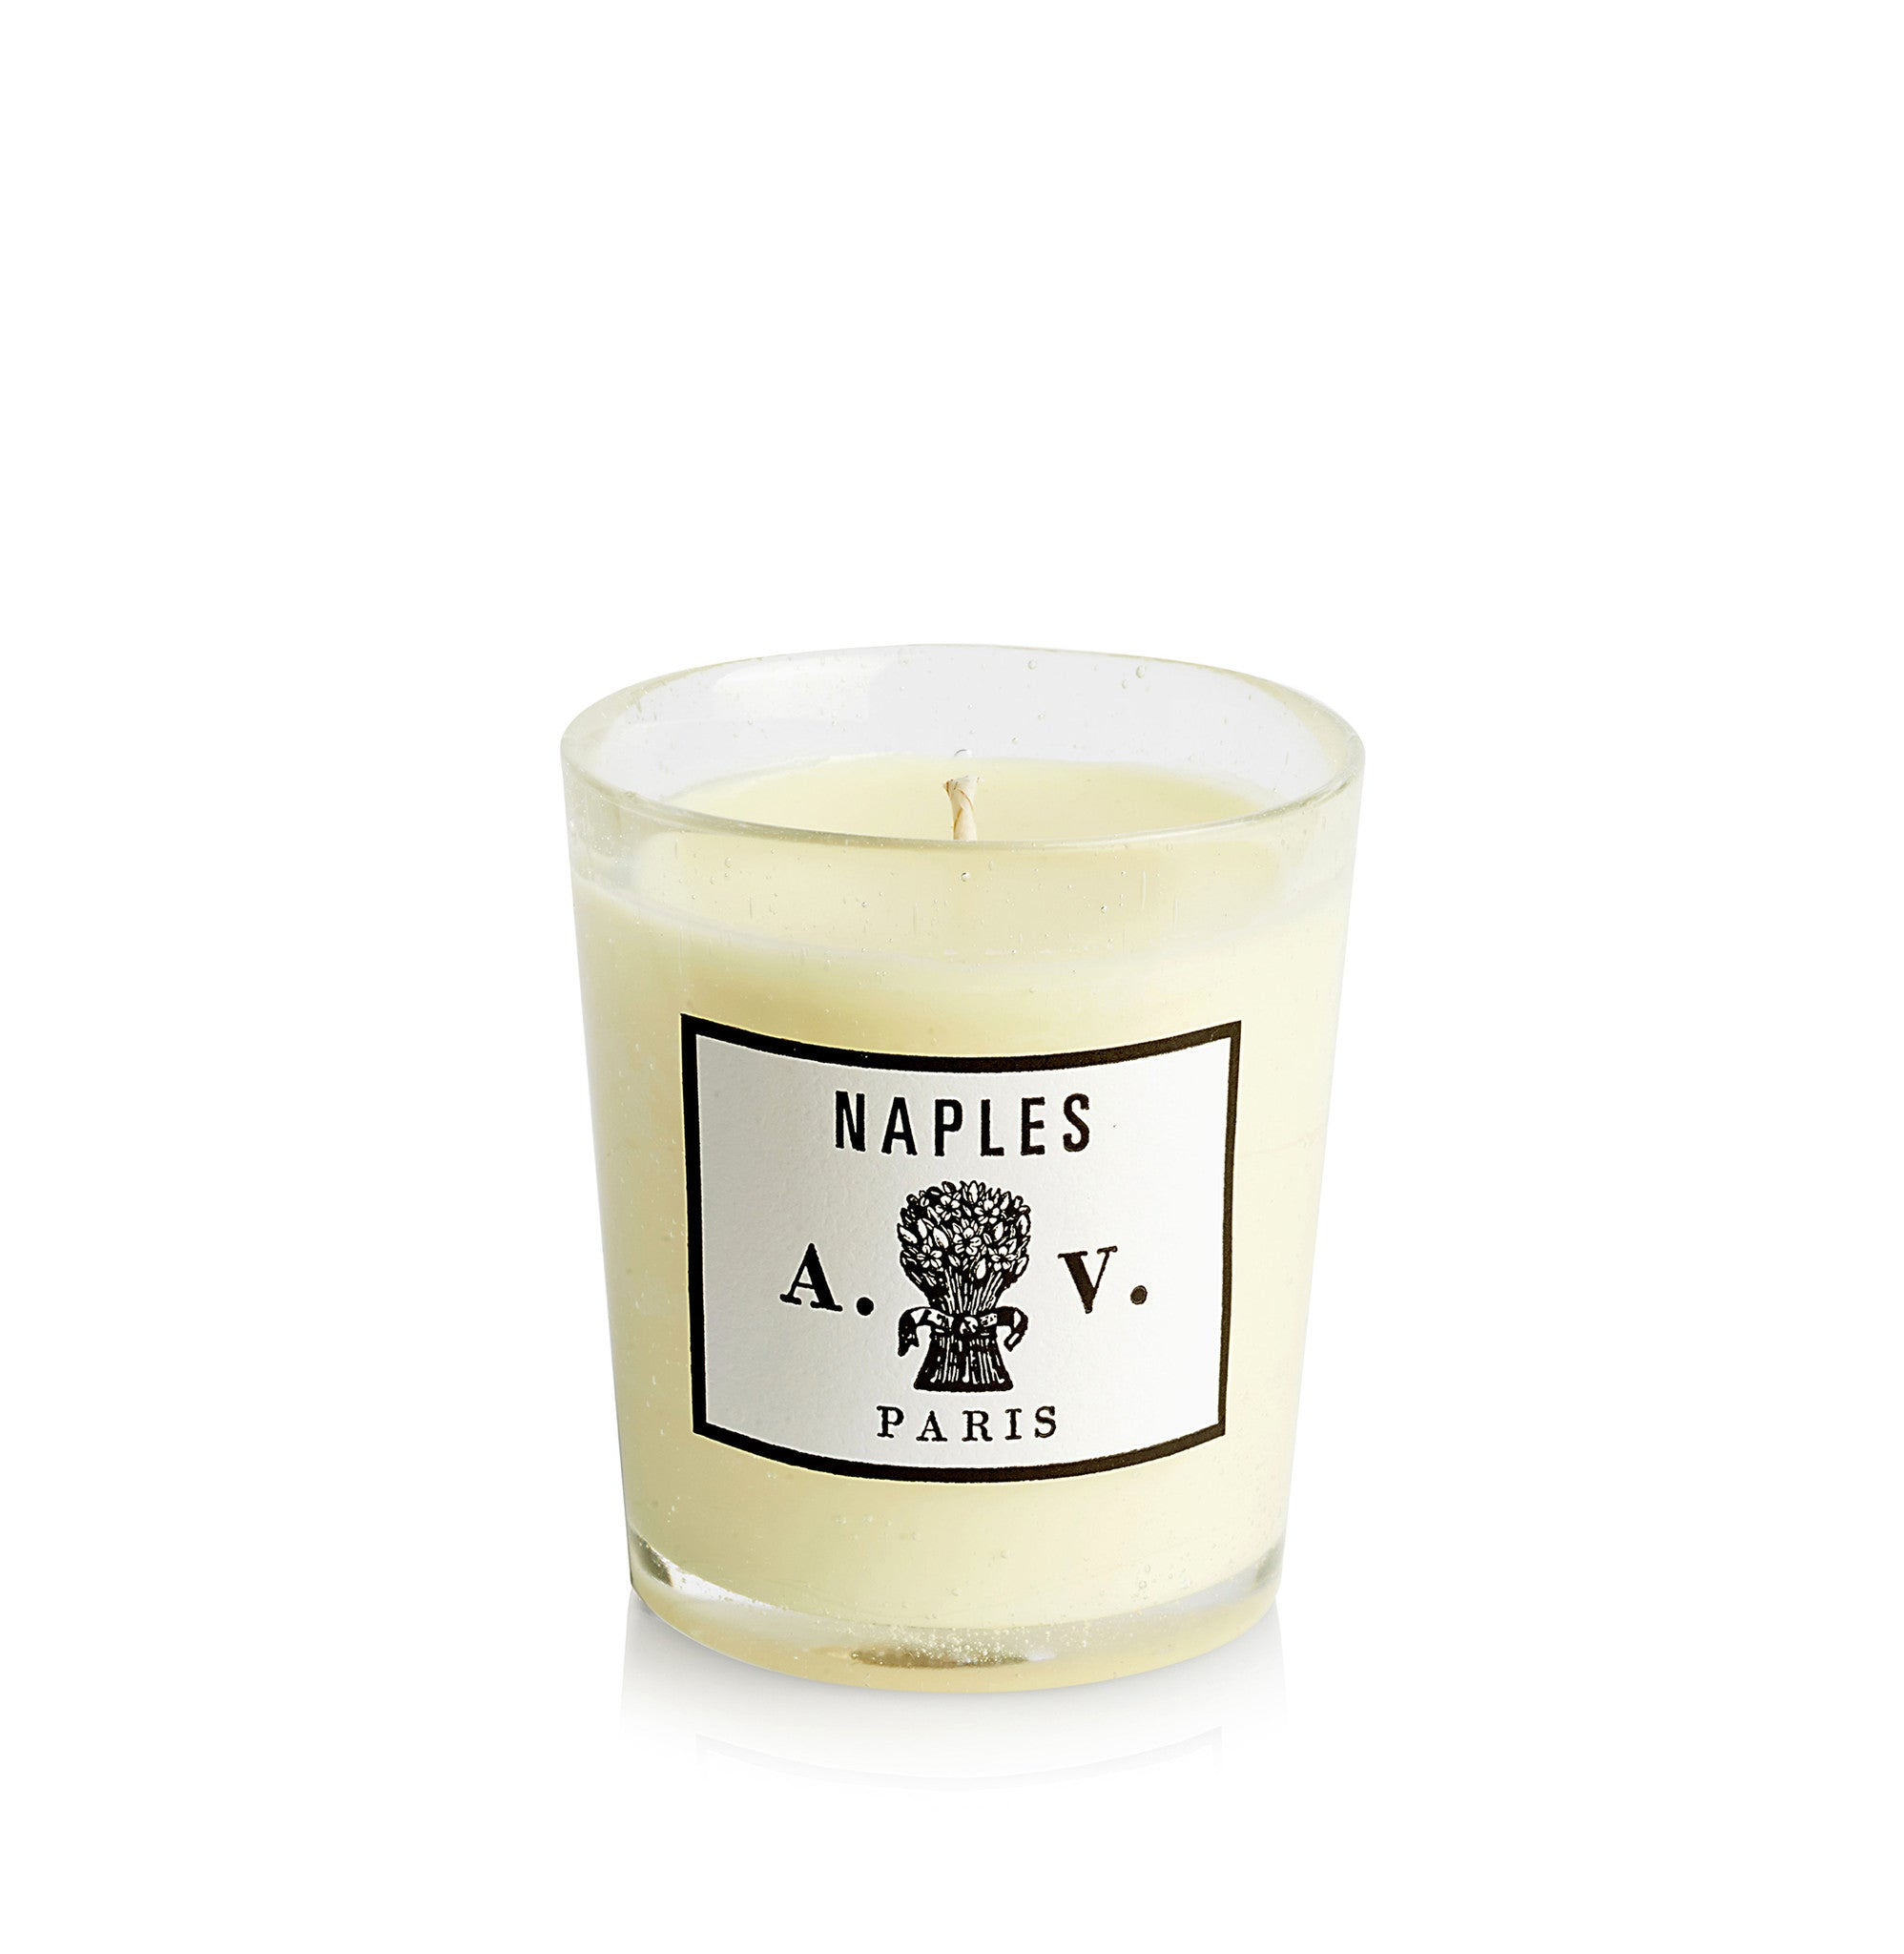 Naples Candle by Astier de Villatte